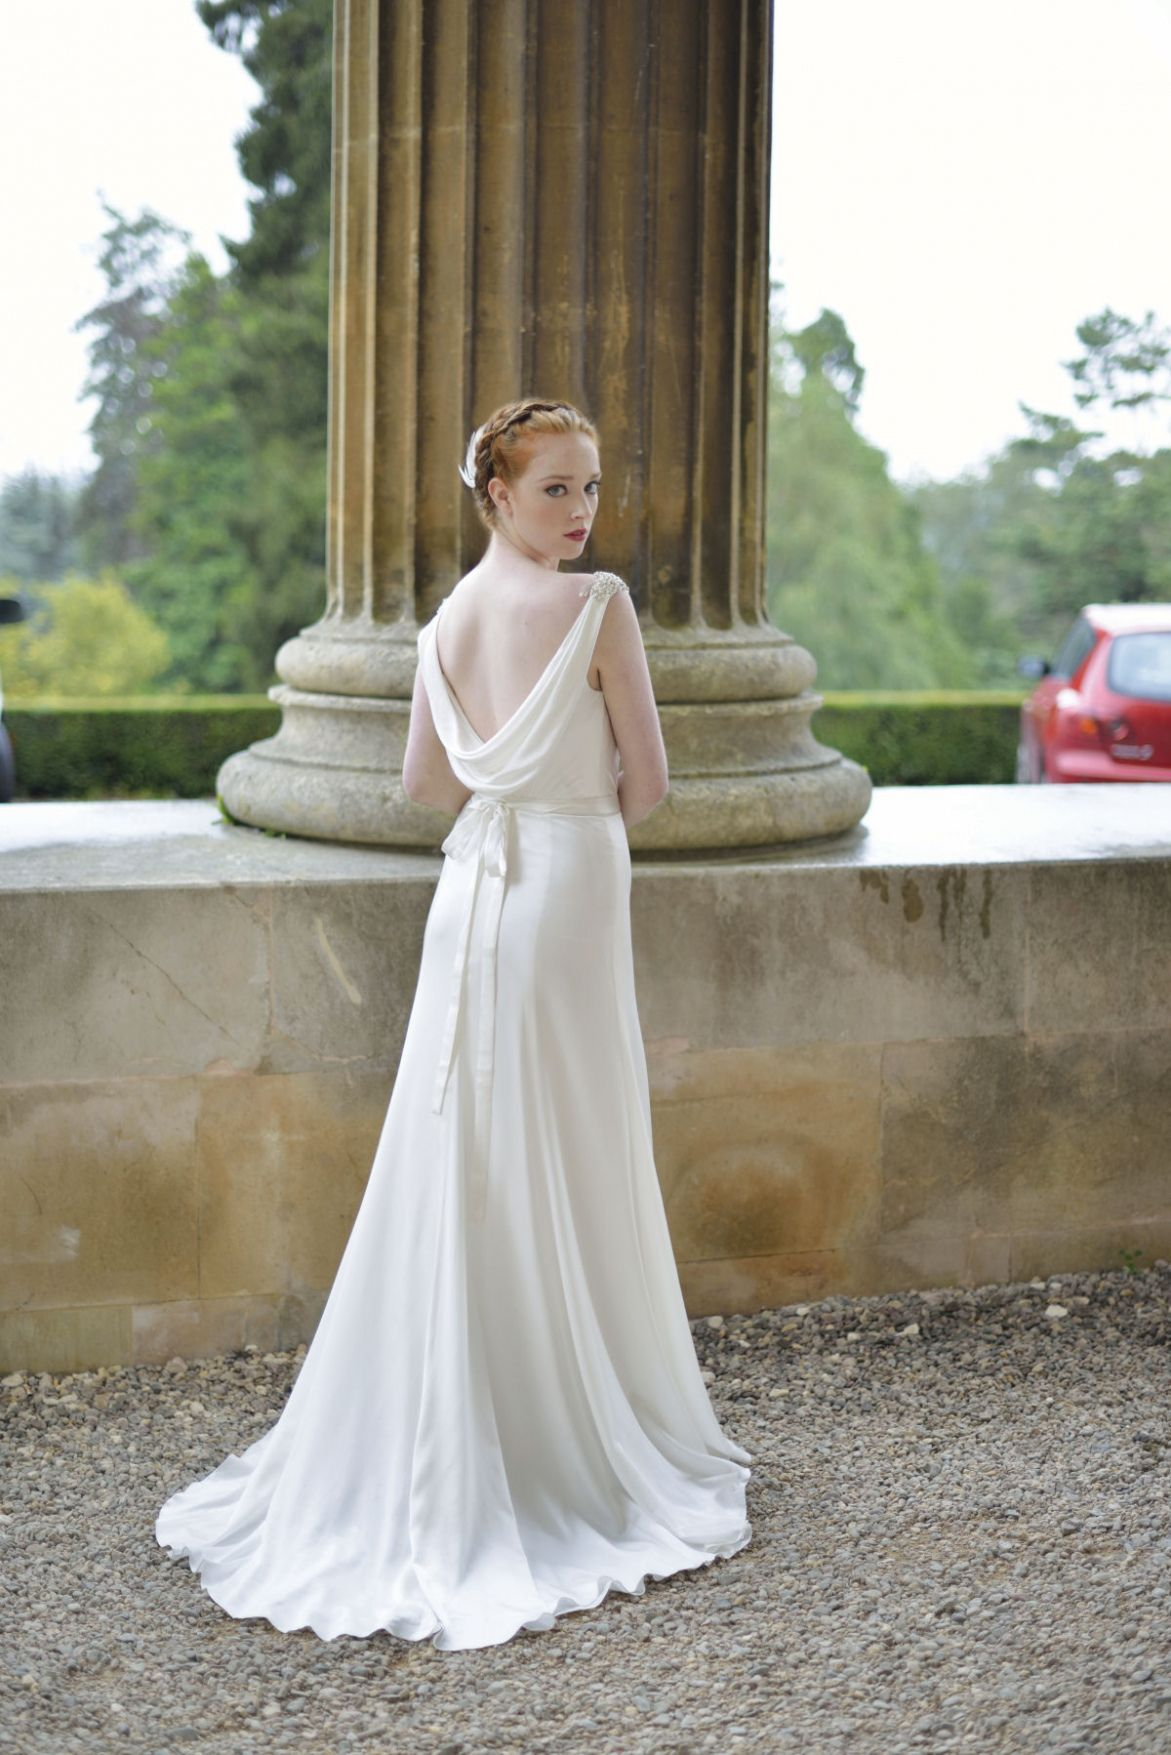 Wedding Dress Hire Berkshire  Dressy Dresses for Weddings Check